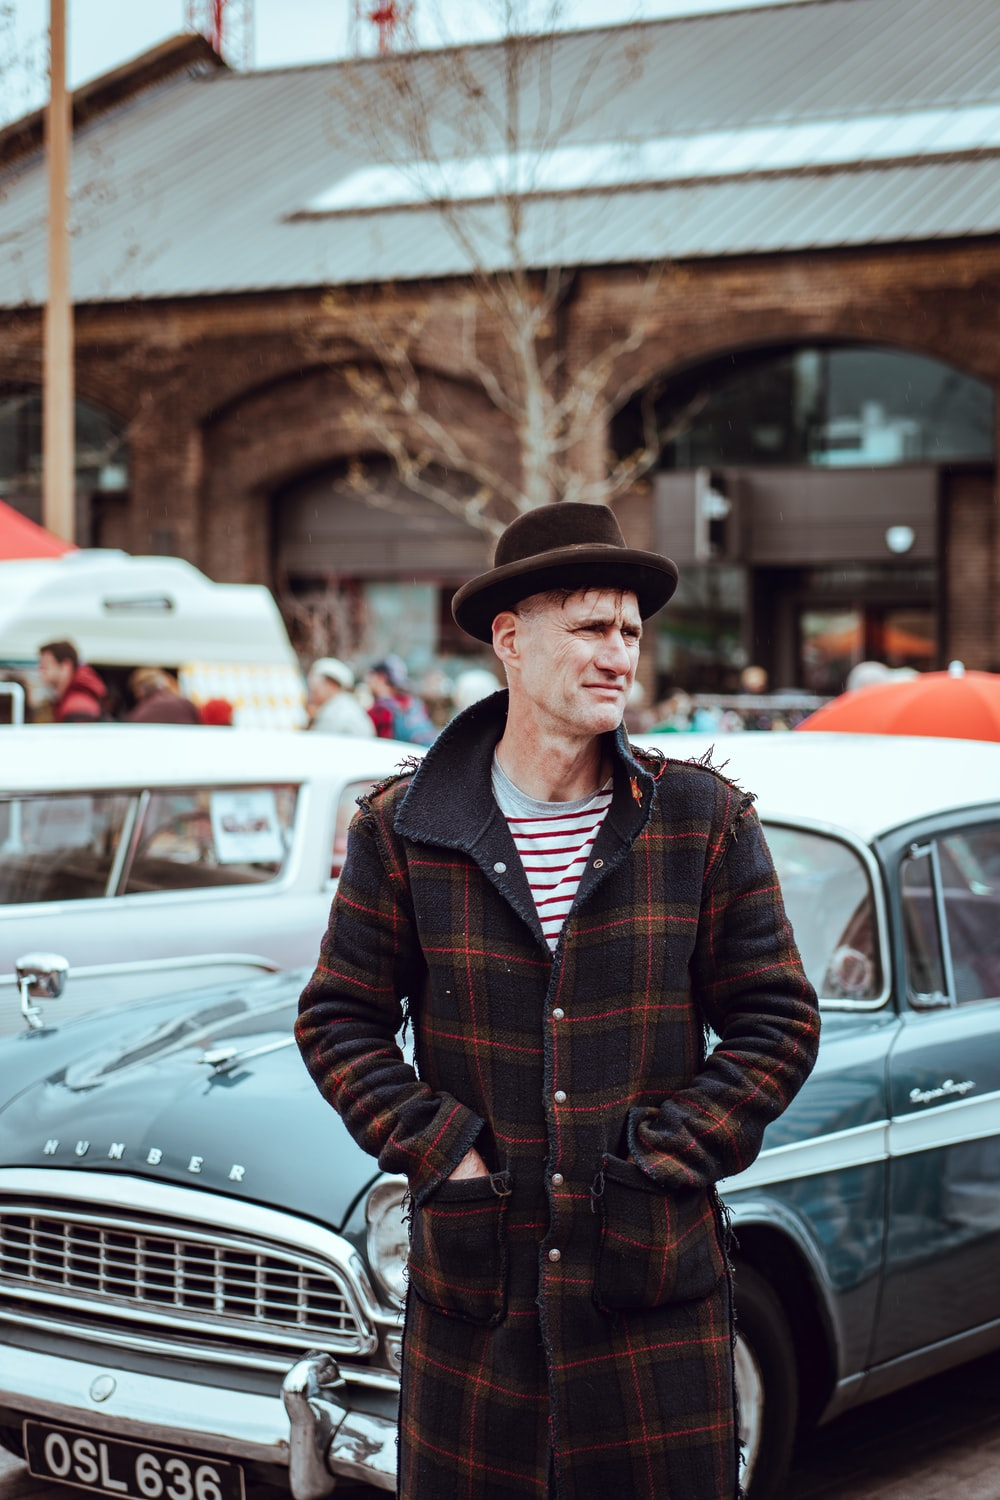 man wearing plaid button-up coat in front of classic car